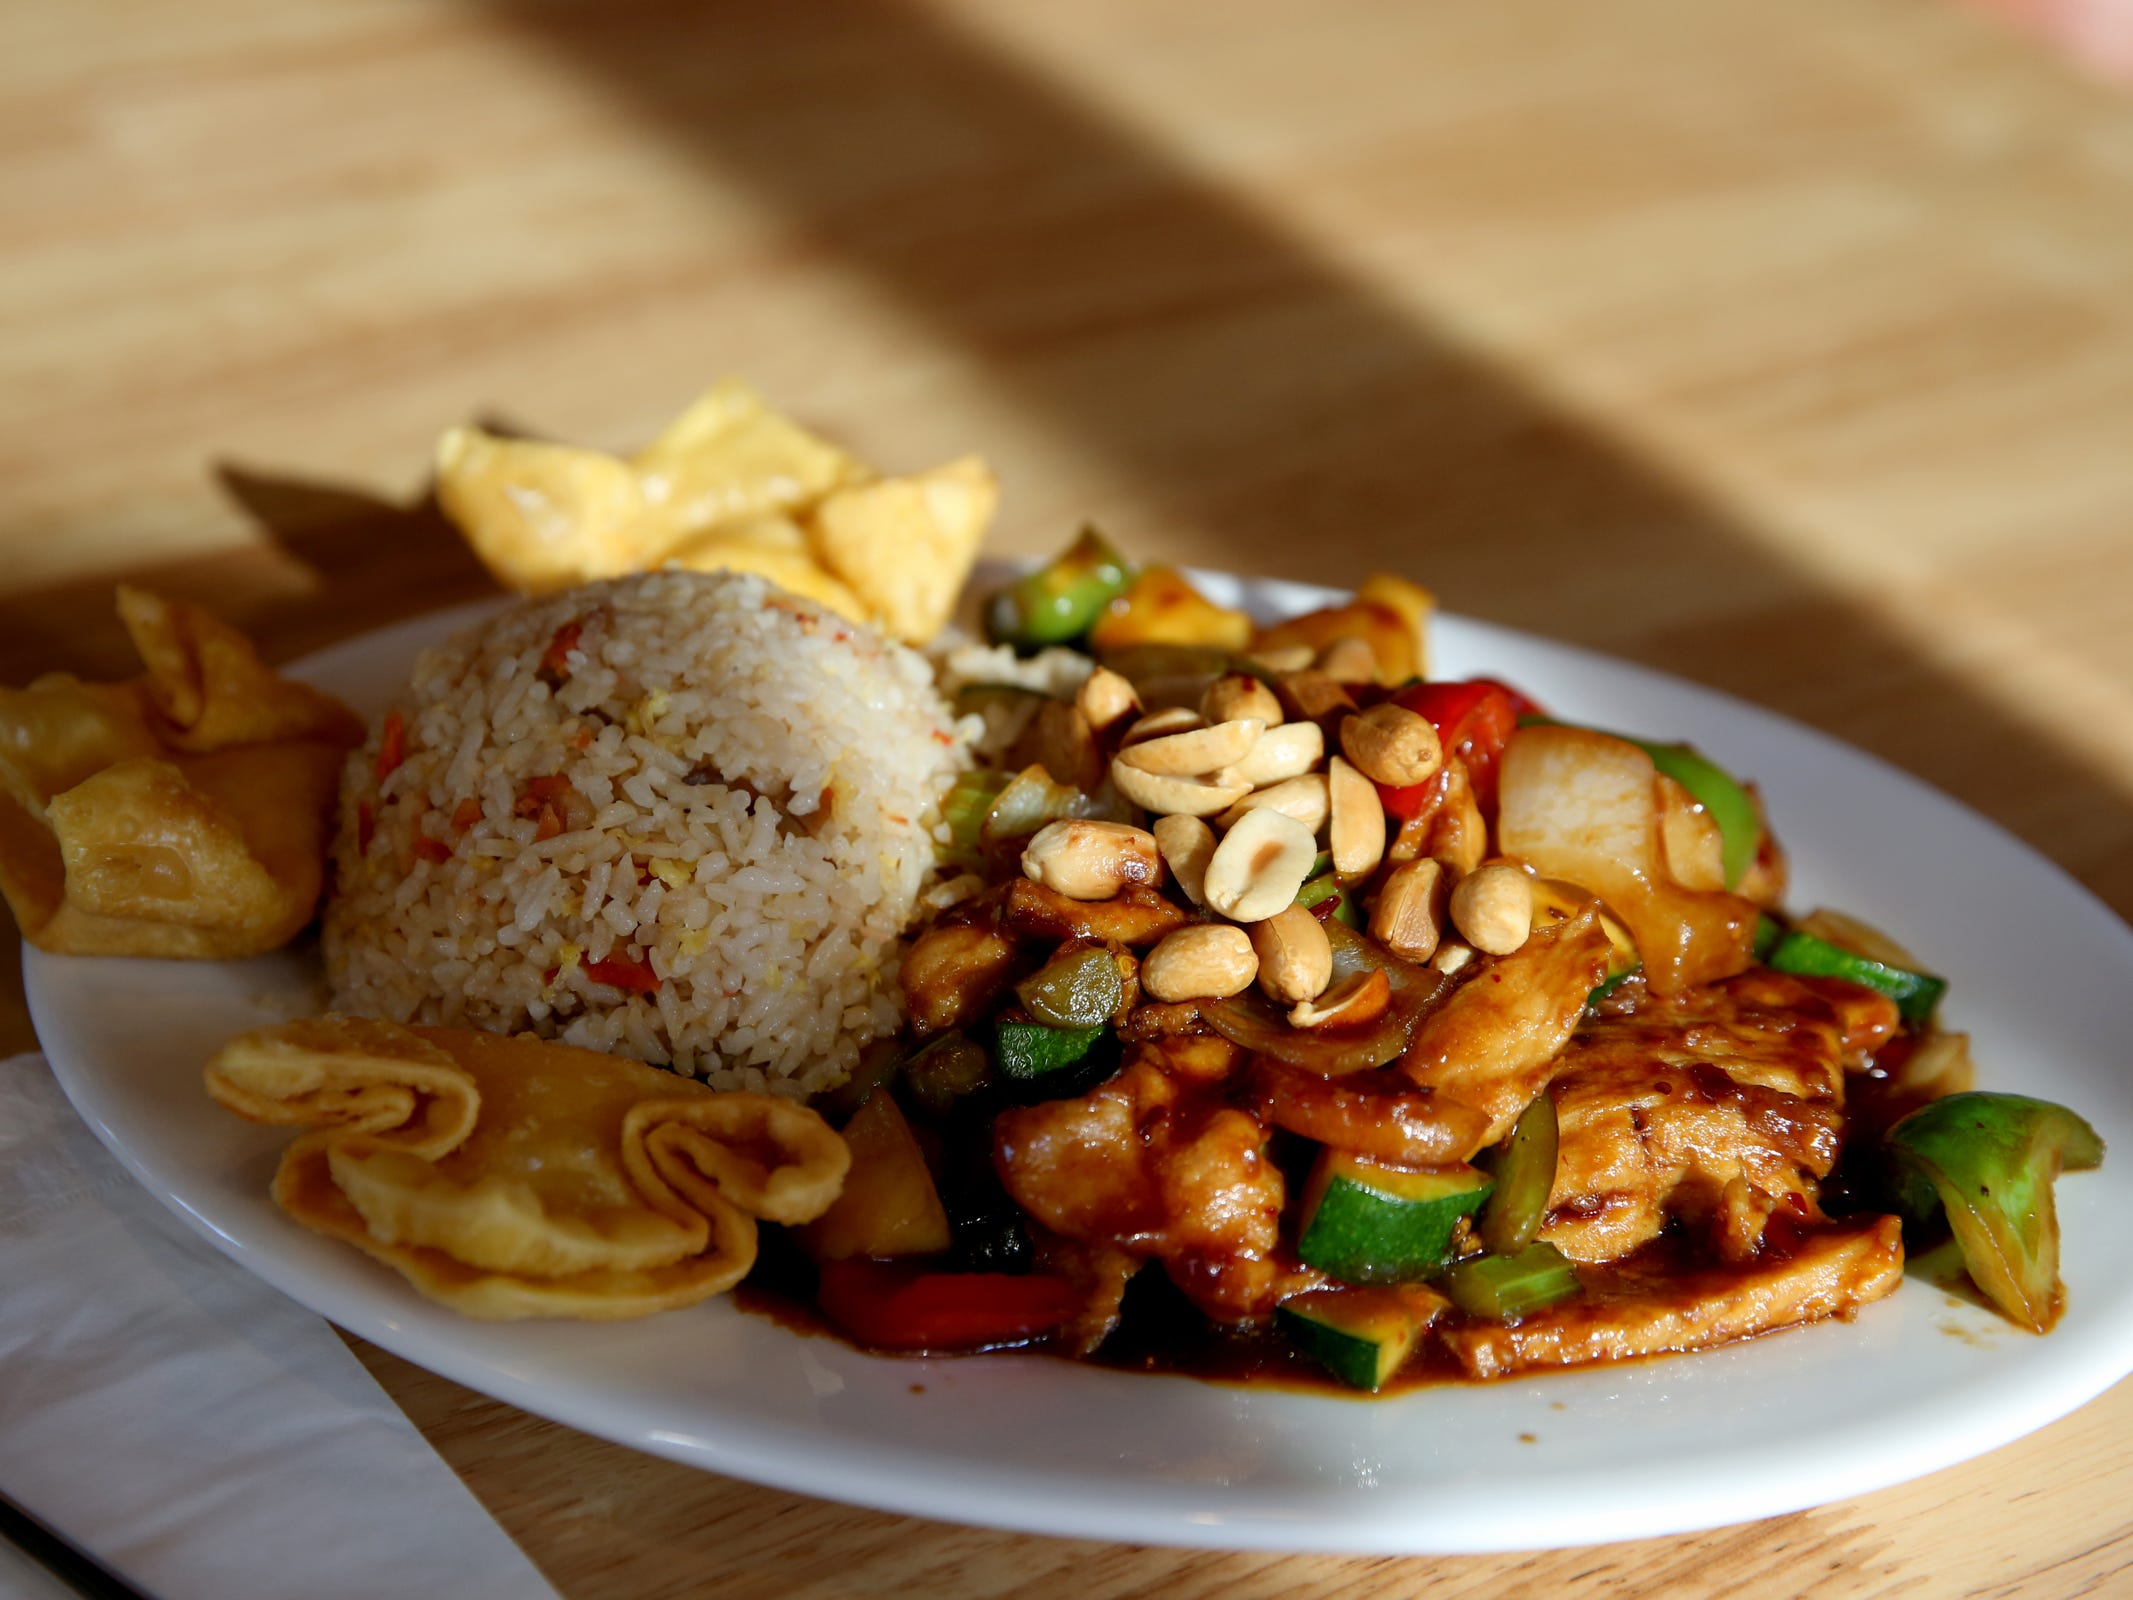 The Kung Pao chicken lunch combination at Chen's Family Dish in Salem on Thursday, Jan. 31, 2019.